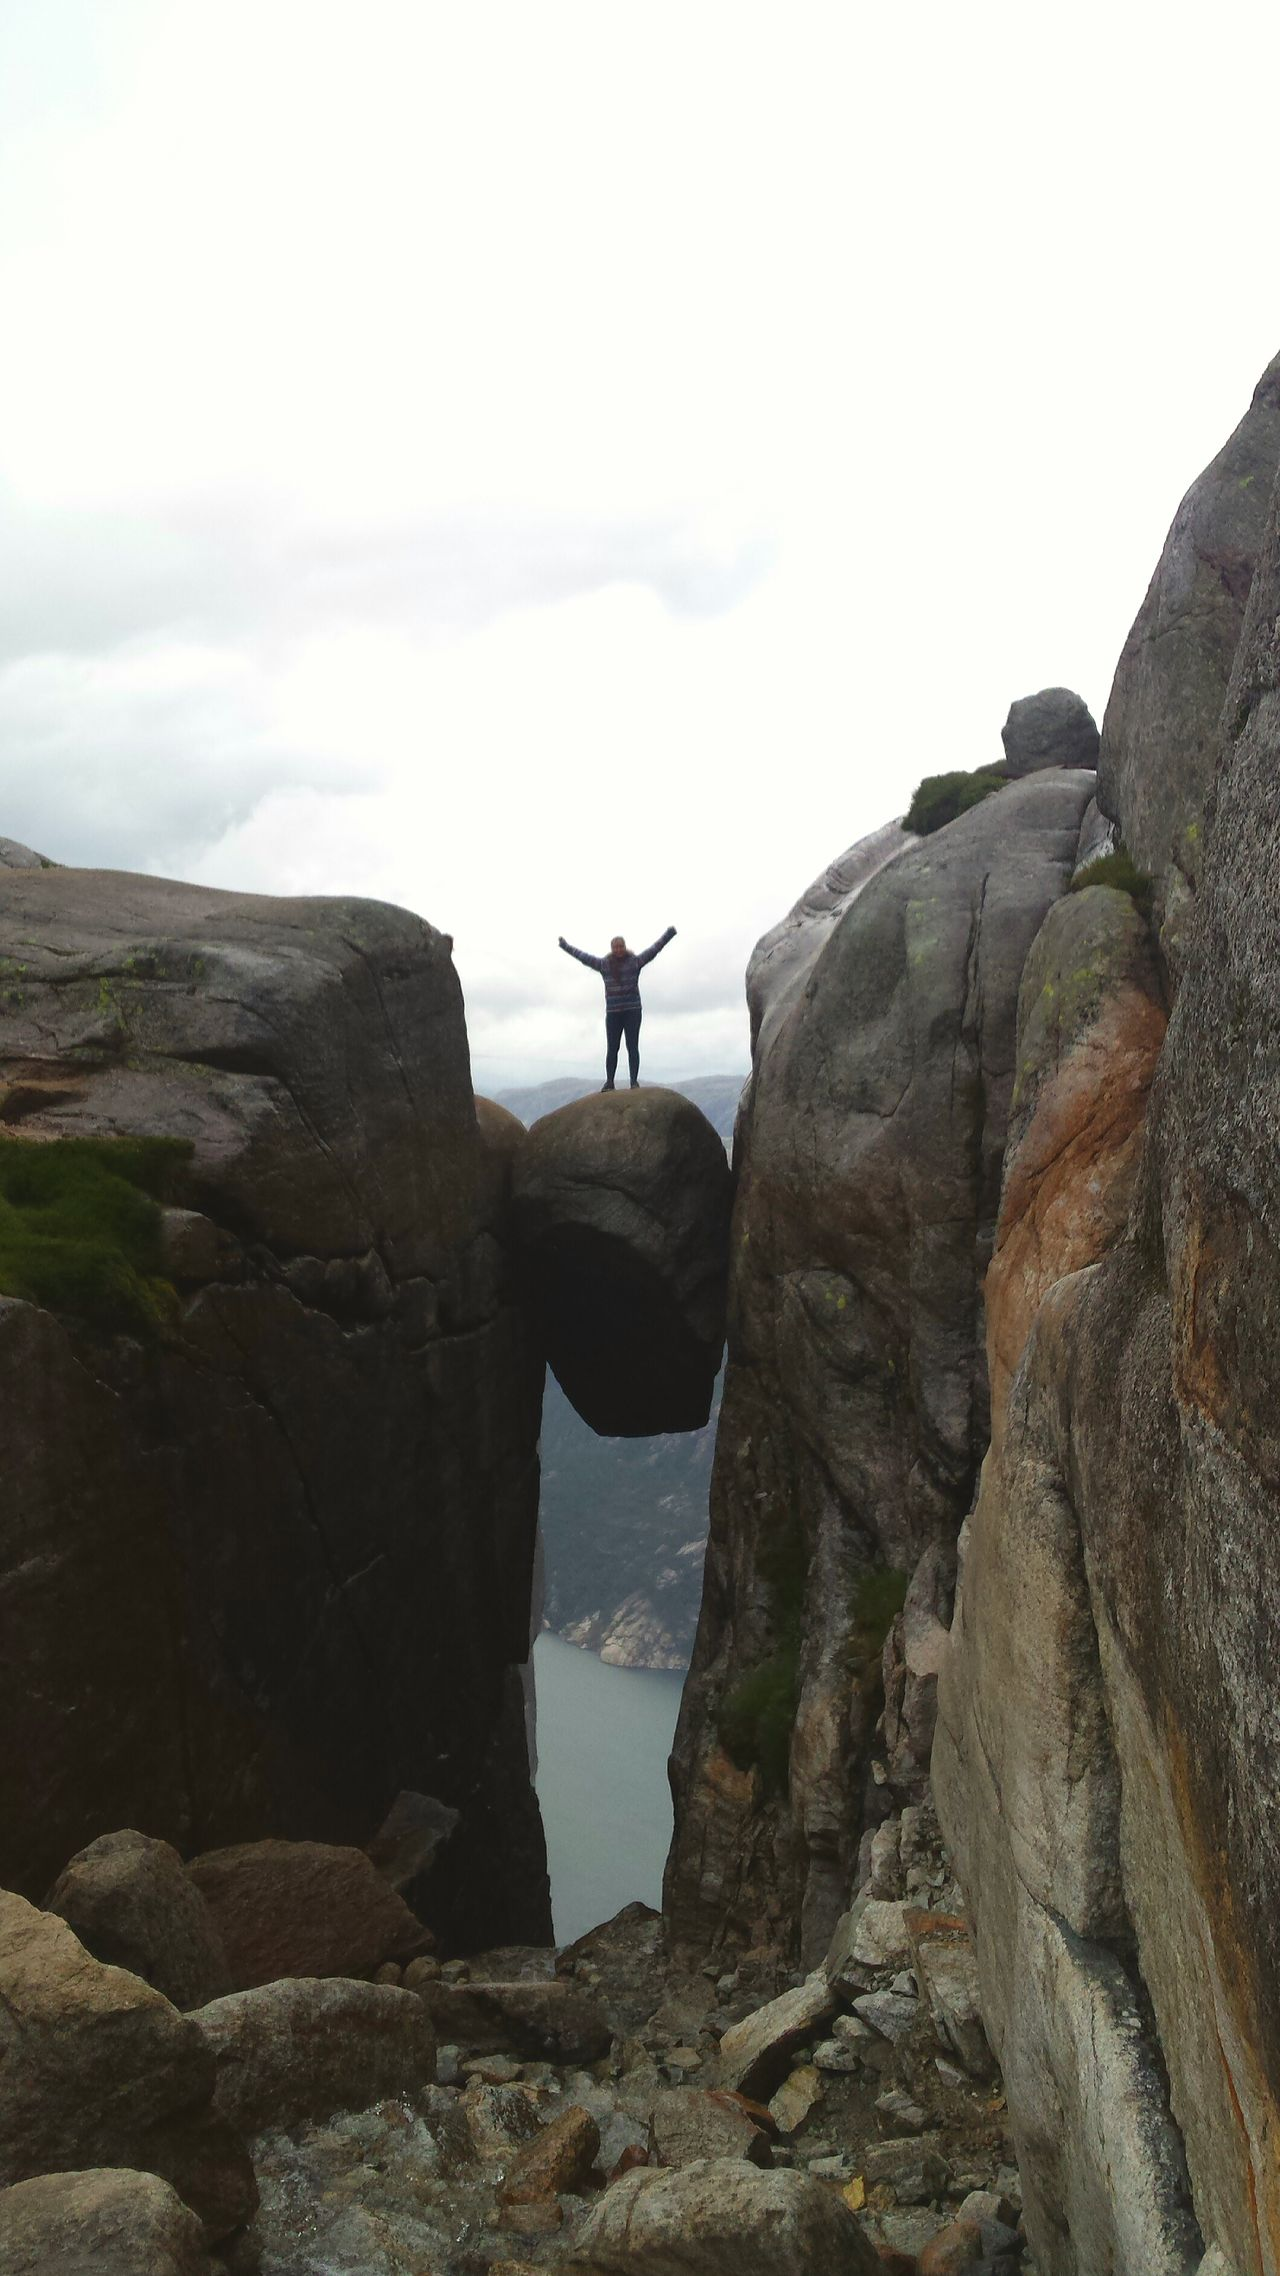 People And Places Vacations Rock - Object Mountain Sky Beauty In Nature Adventure Norway Kjerag Kjeragbolten